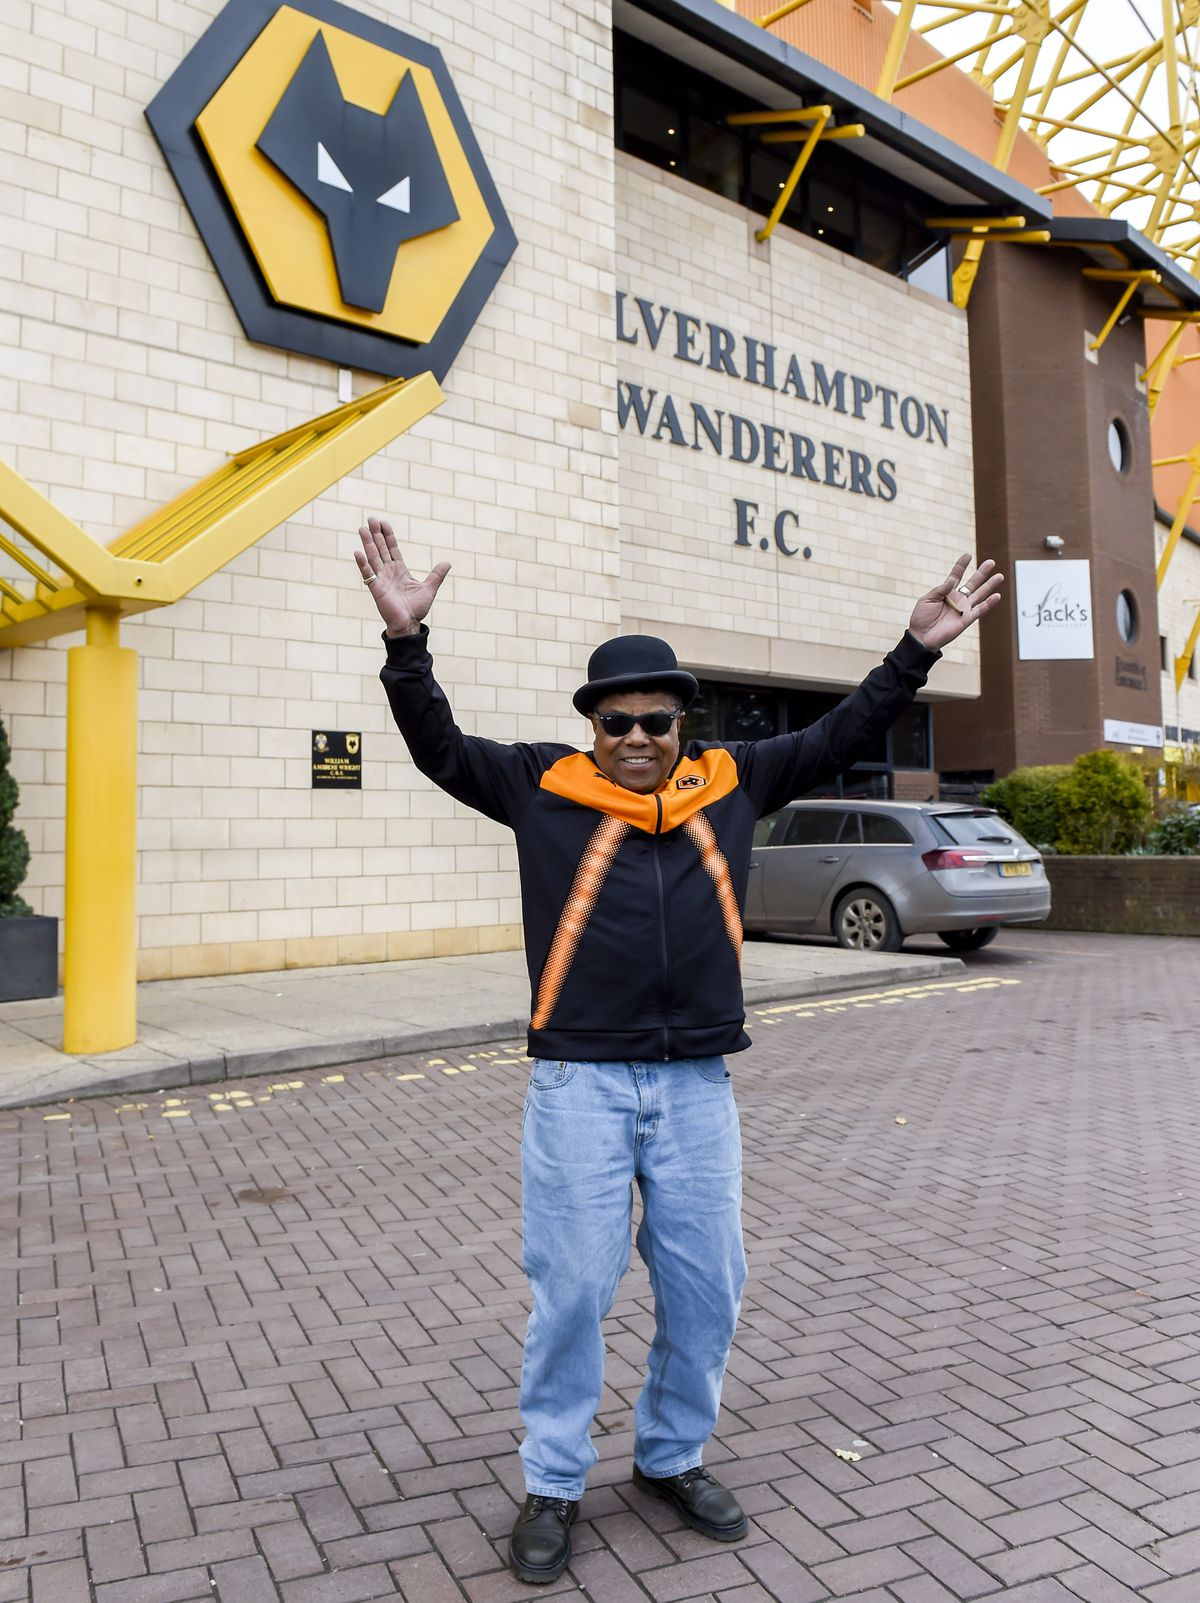 Tito was delighted to visit Molineux again. Photo: James Watkins